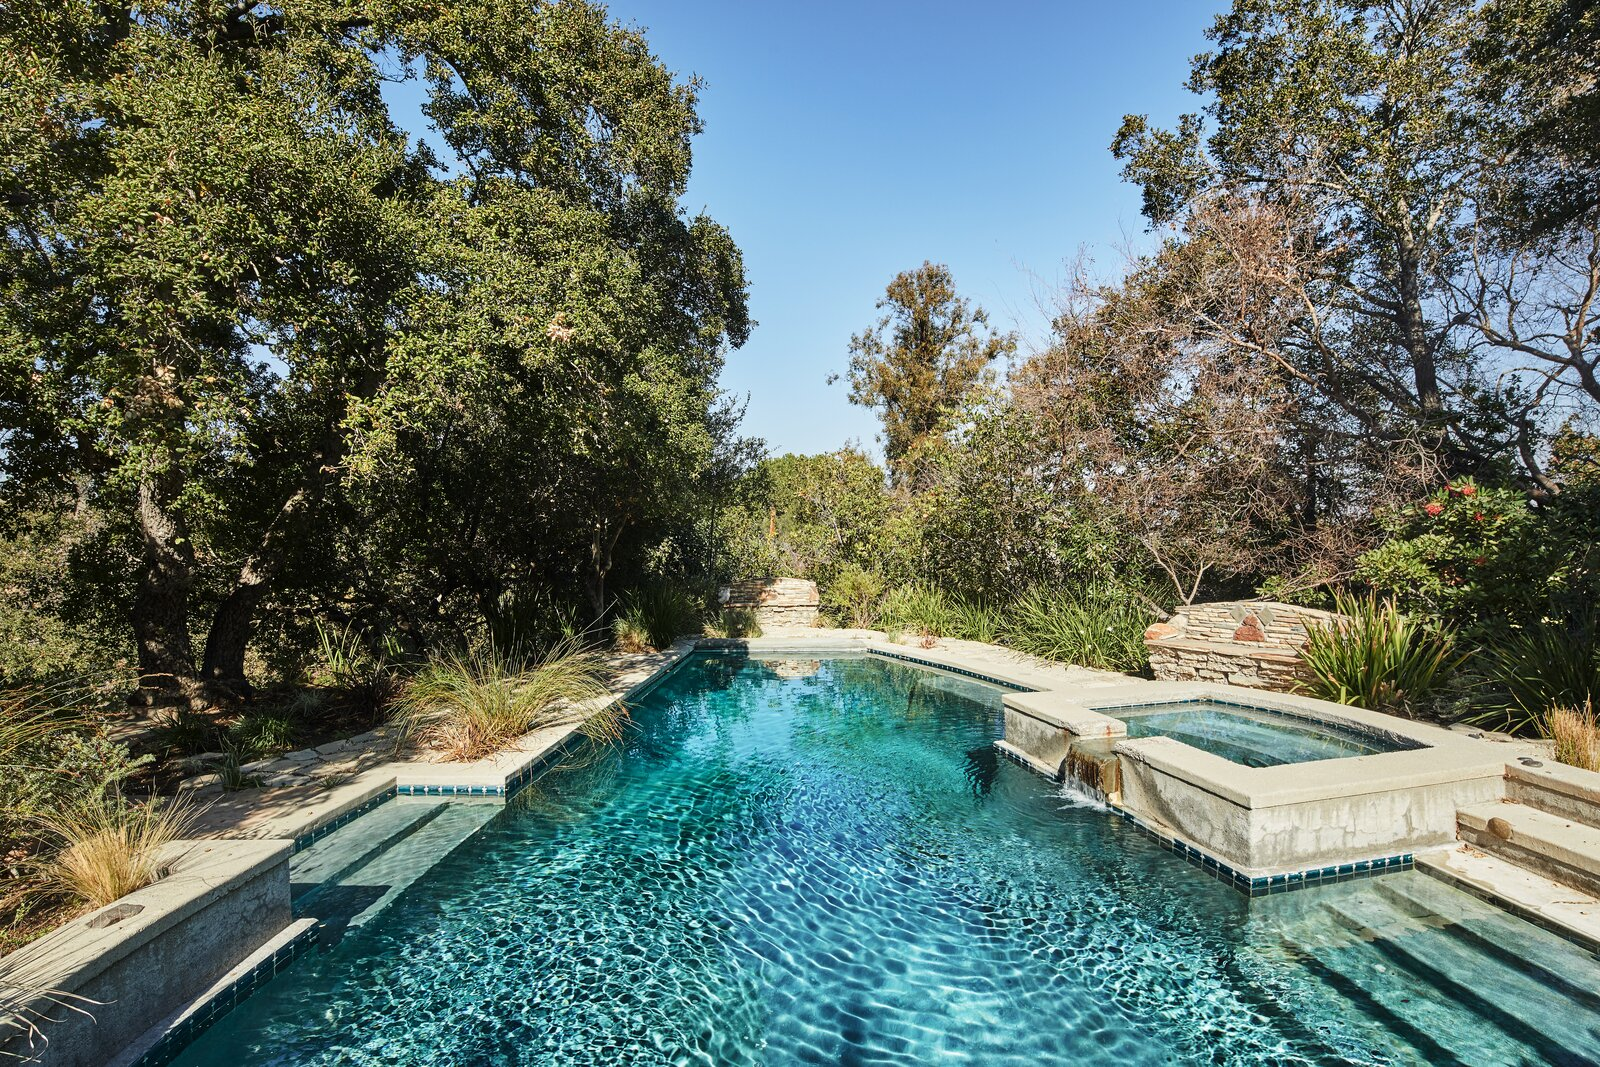 Beverly Hills compound pool